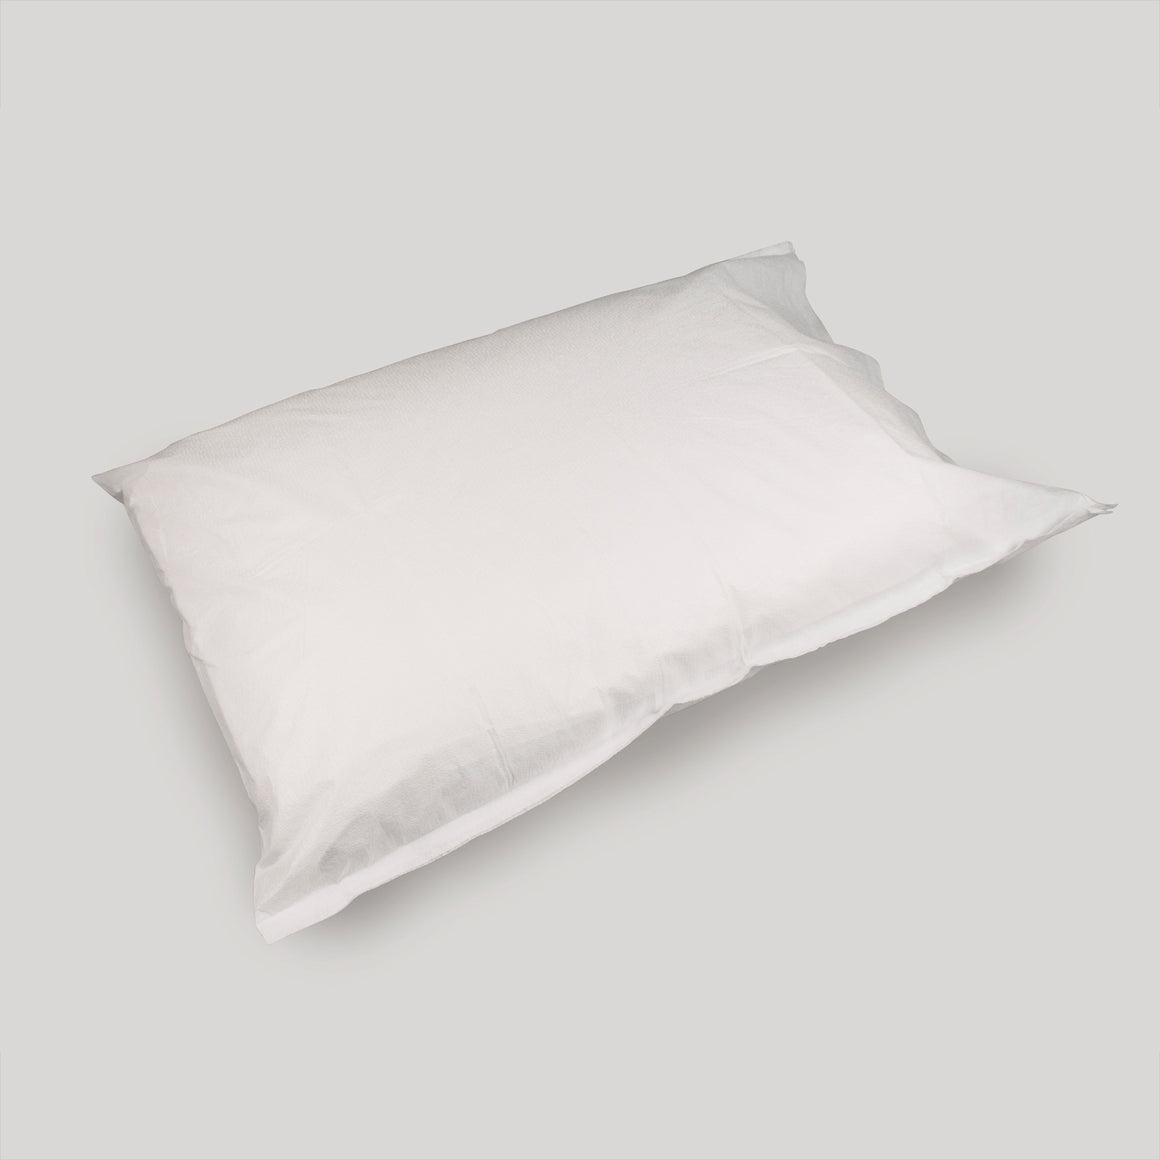 Dynarex #8161 Disposable Pillowcases 21x30 - 100 per case - fhmedicalservices